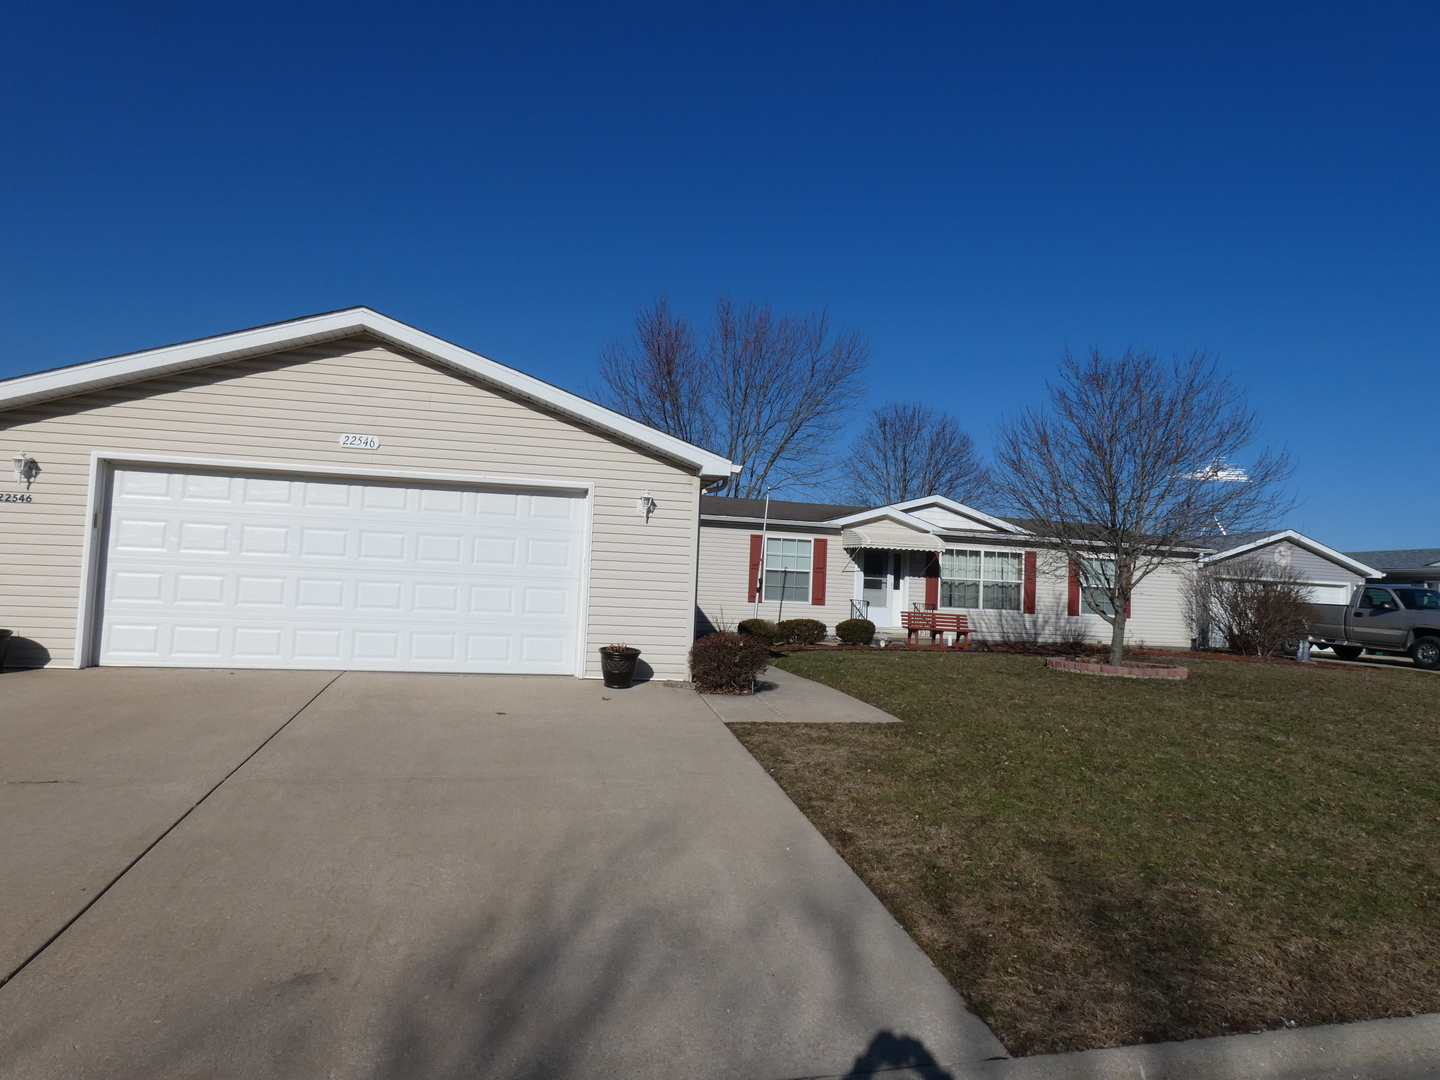 22546 South Woodside, Channahon, Illinois, 60410